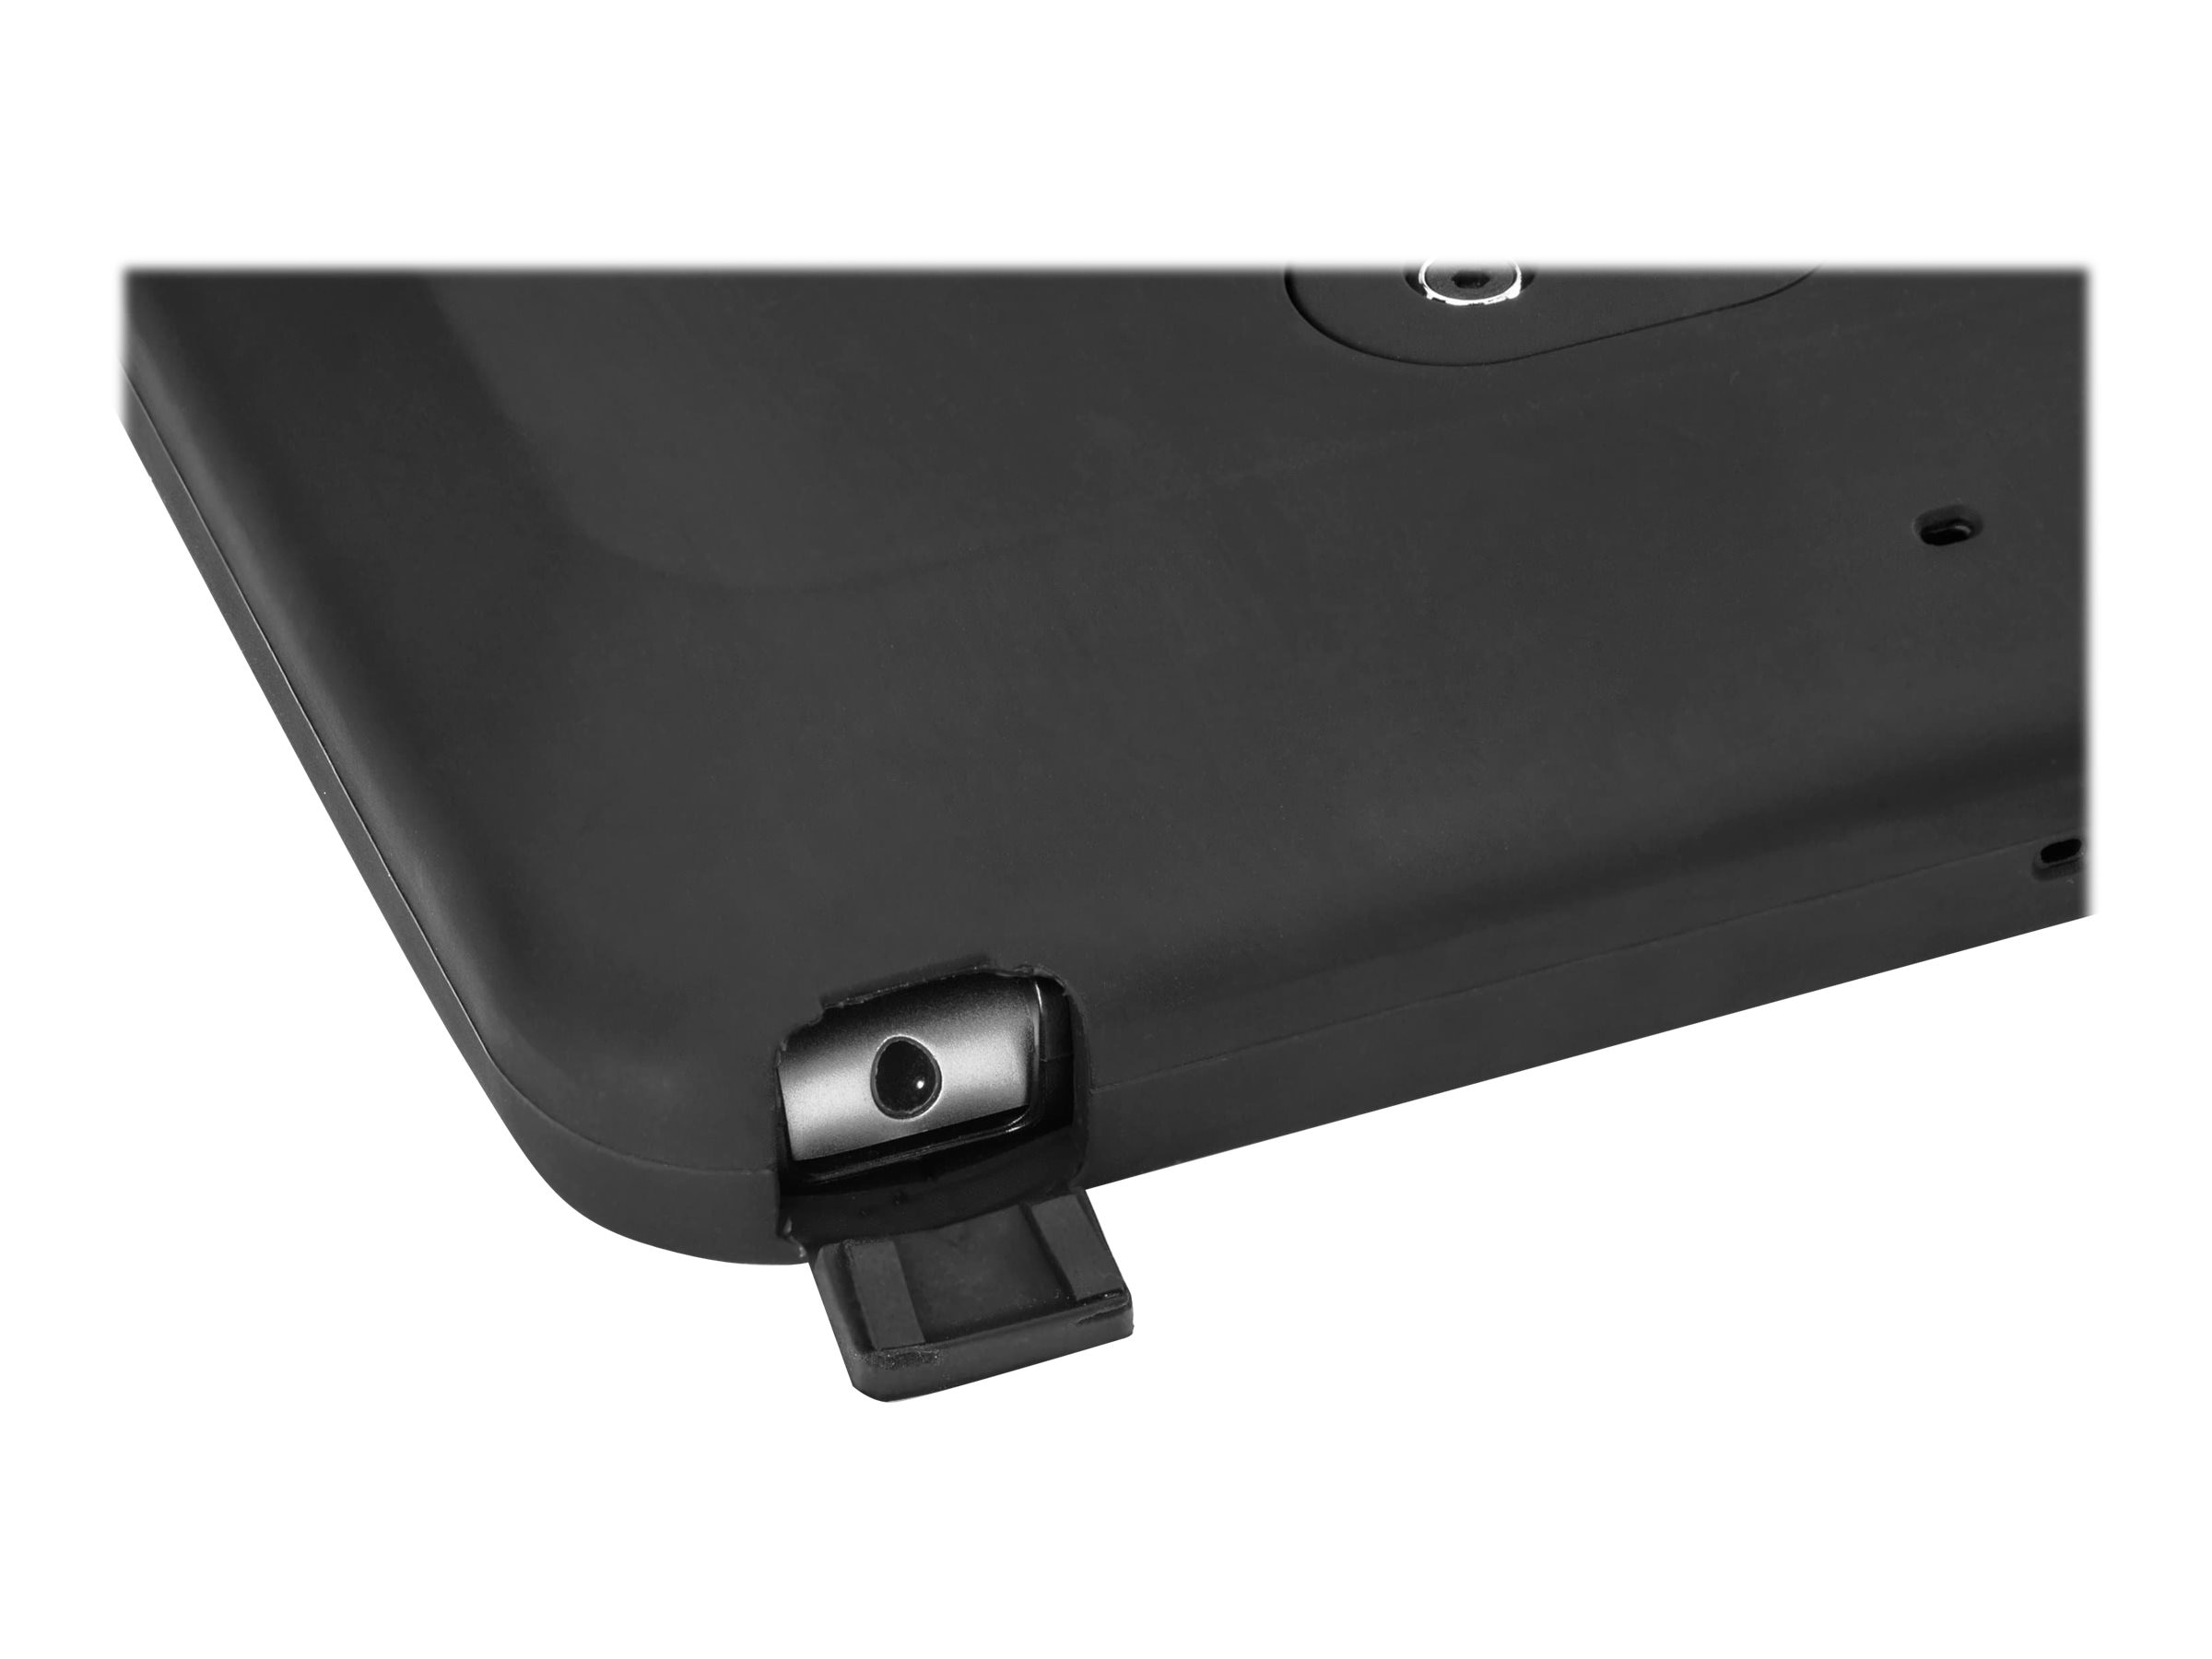 Kensington SecureBack Rugged Payments Enclosure for iPad Air iPad Air 2, Black, K67739WW